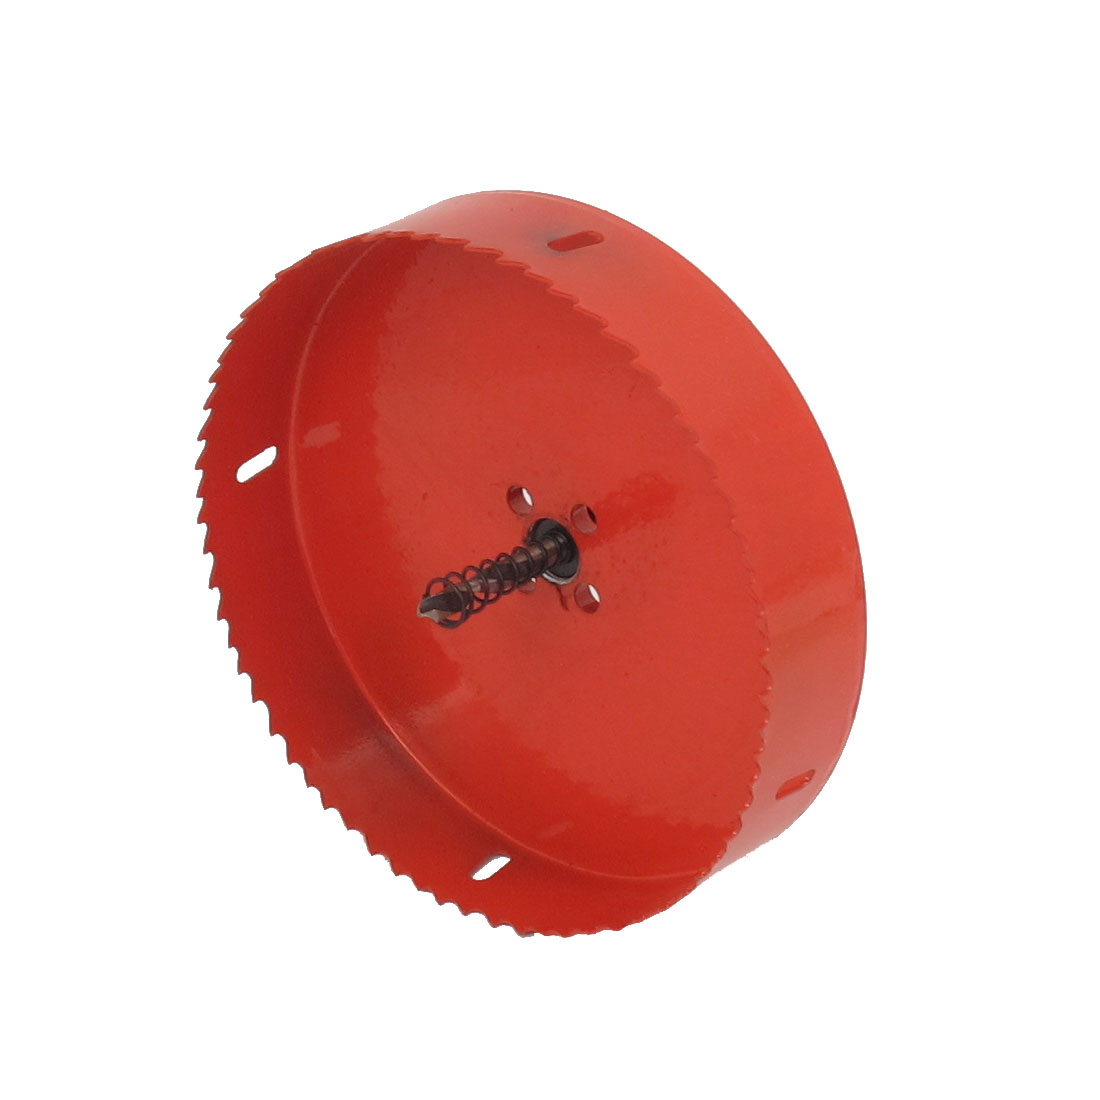 6mm Drill Bit 160mm Cutting Diameter Hole Saw Red for Drilling Wood